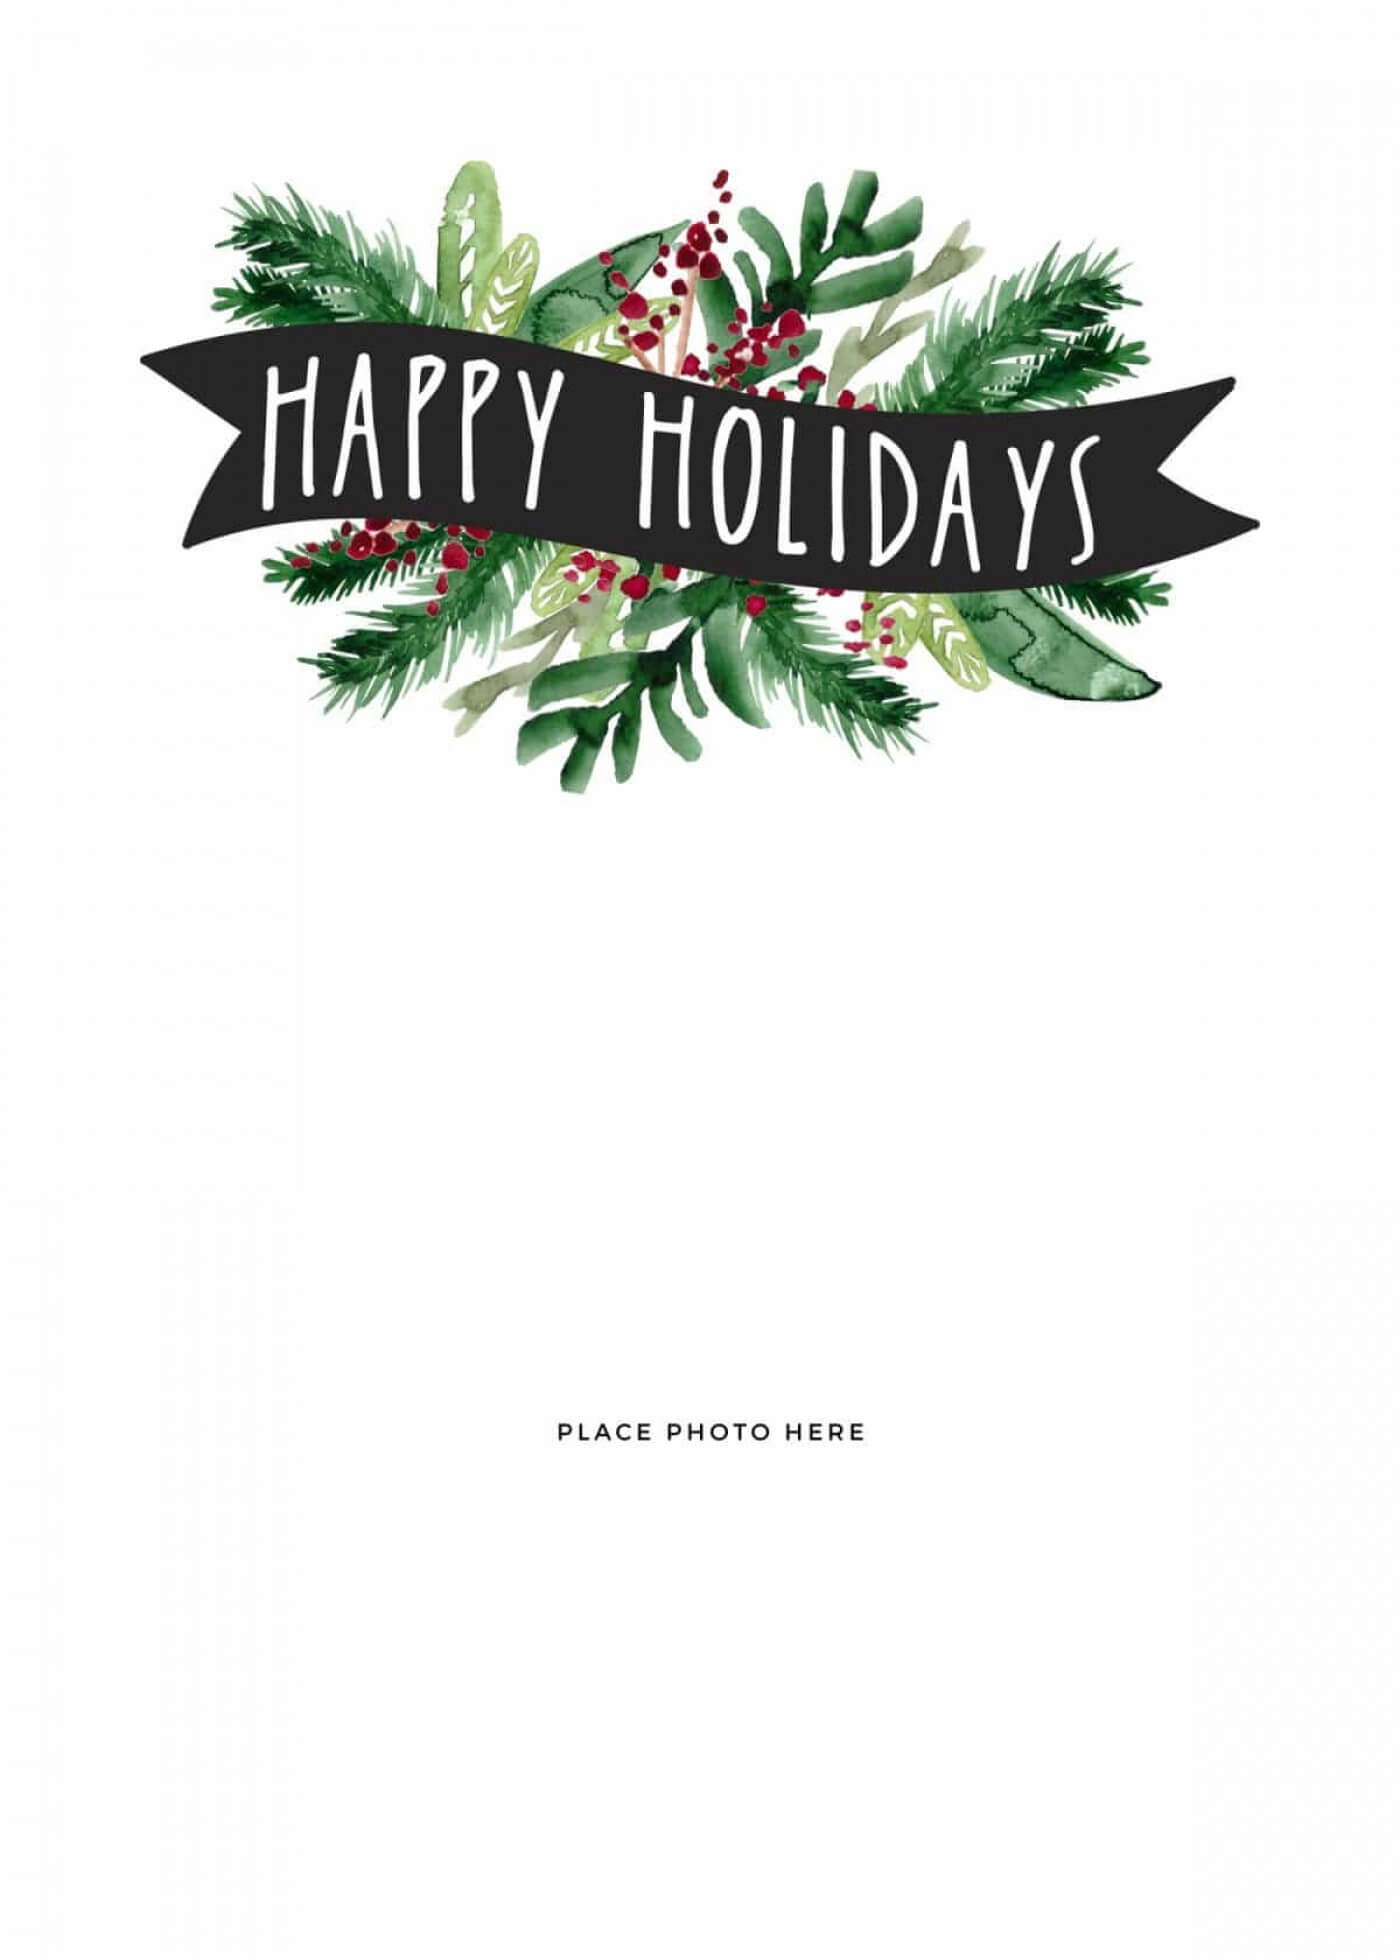 027 Template Ideas Free Holiday Card Templates For Photoshop With Regard To Free Holiday Photo Card Templates